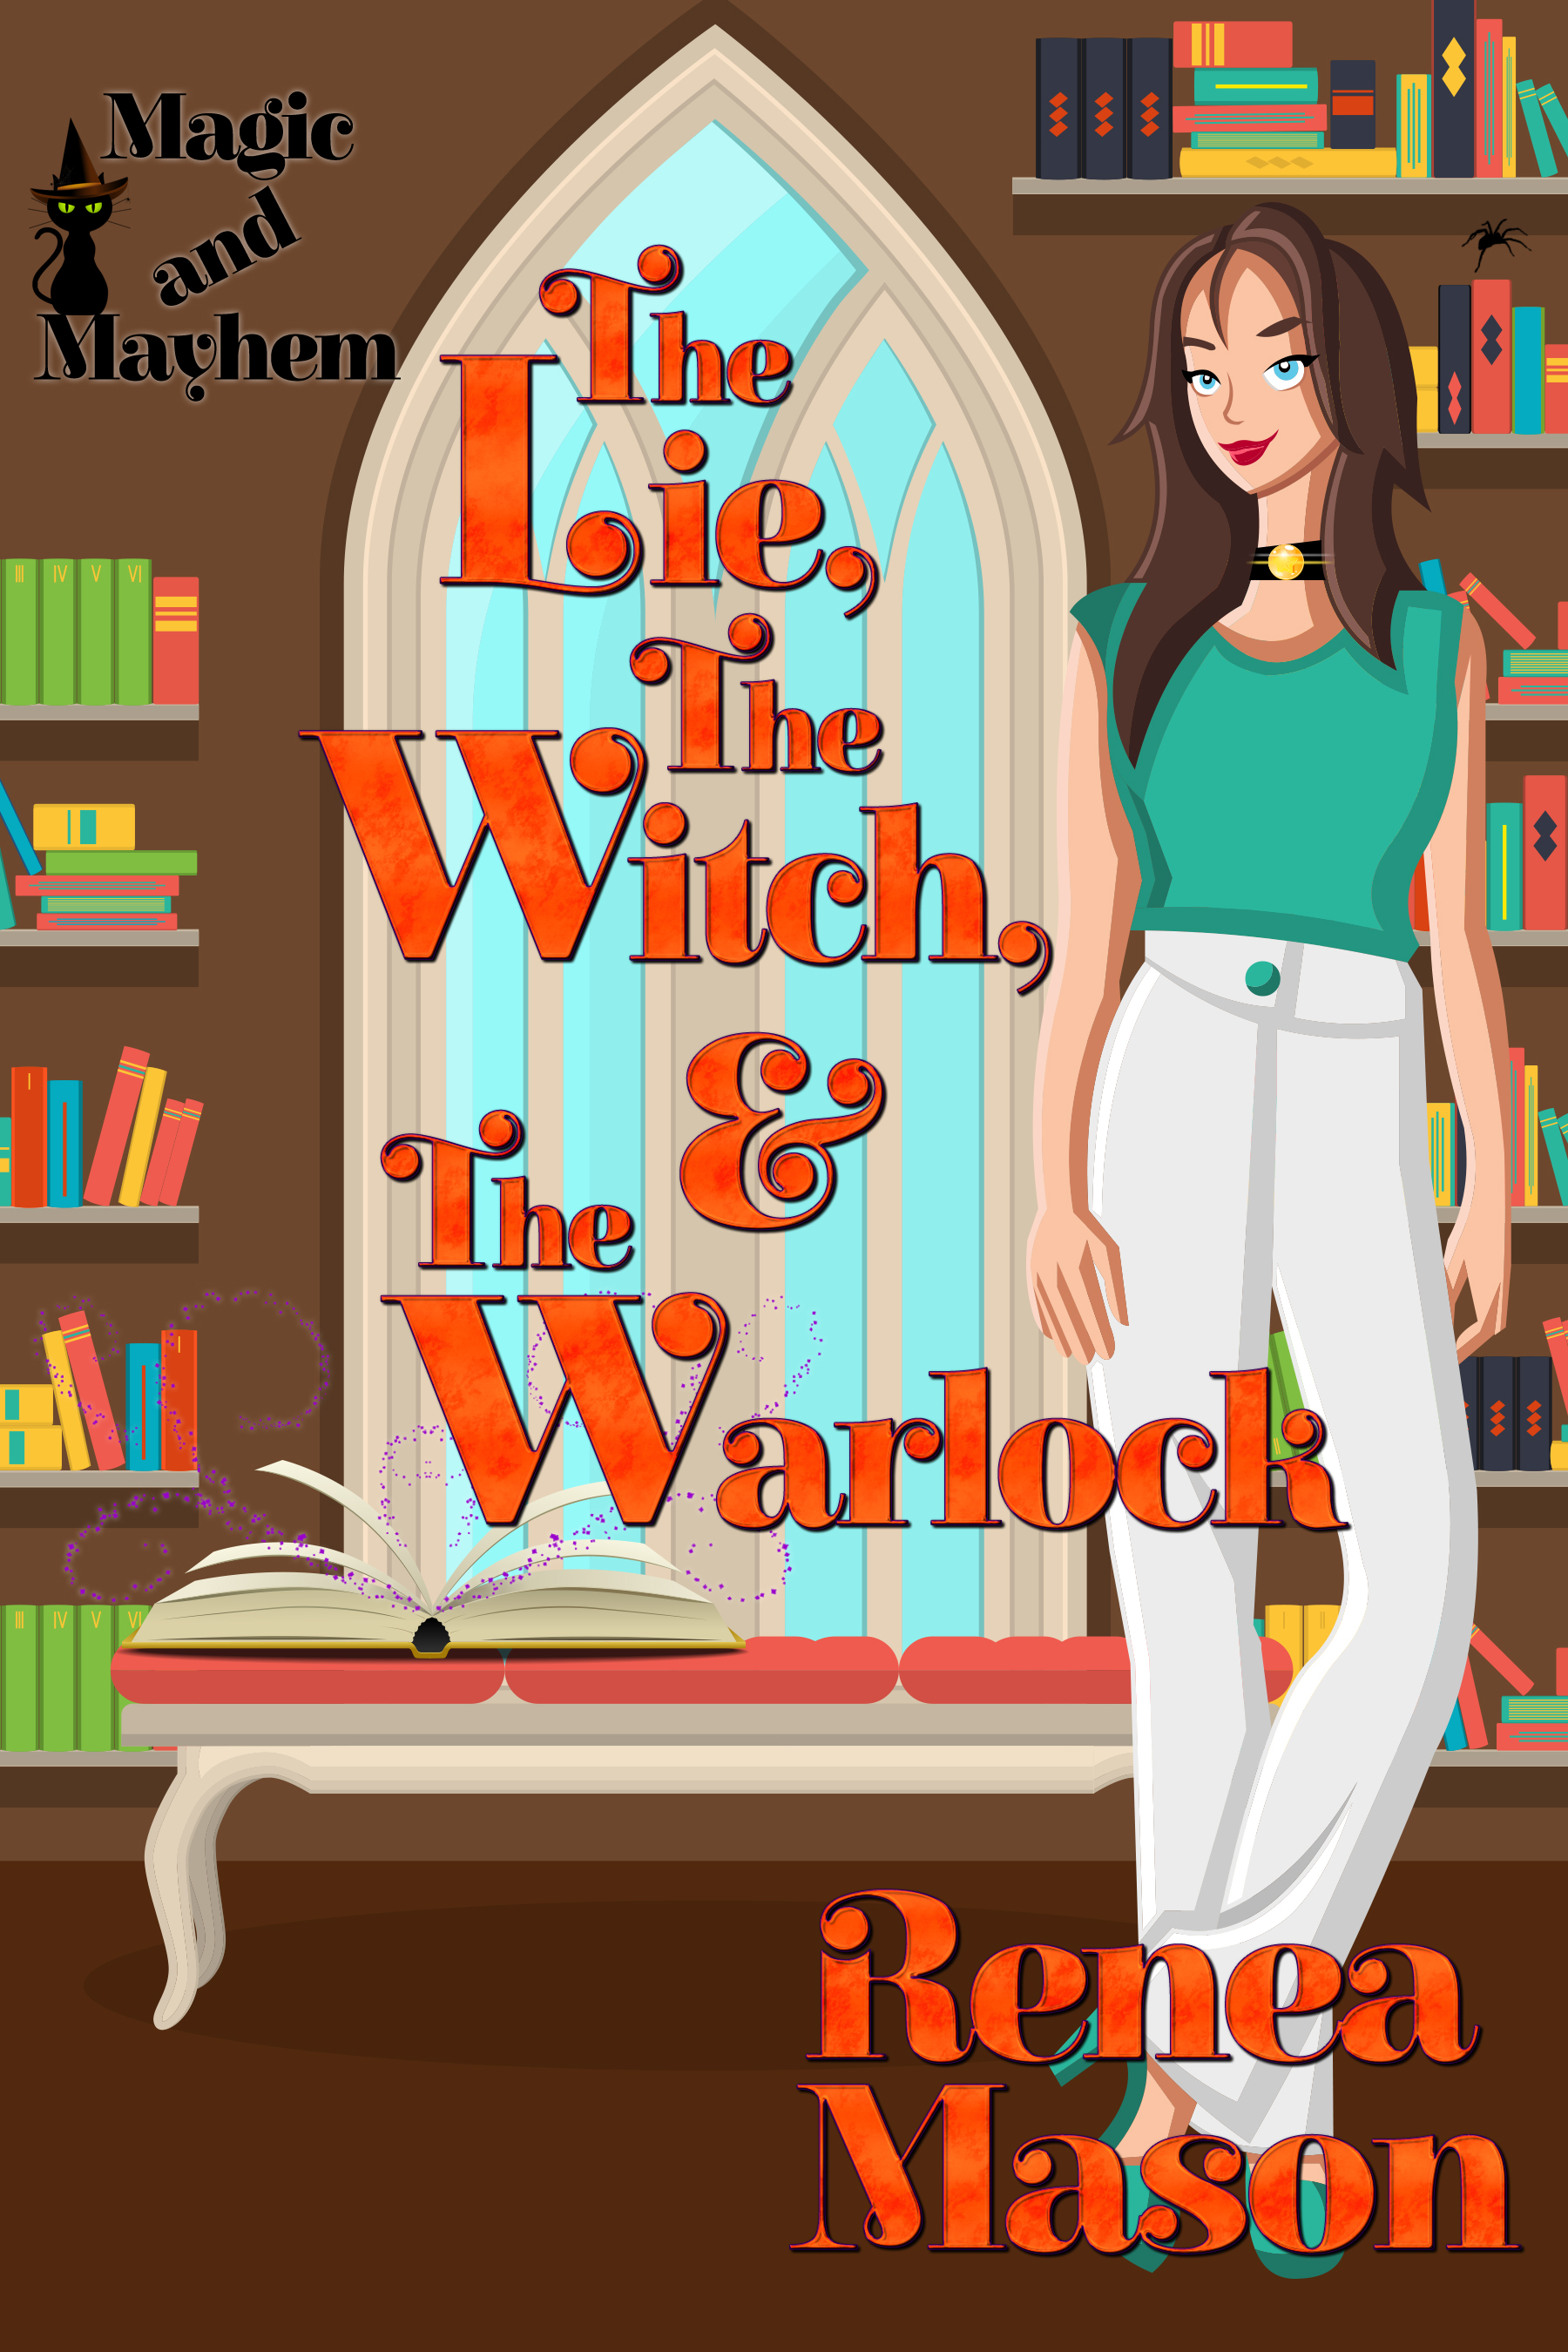 The Lie, the Witch and the Warlock Cover Art